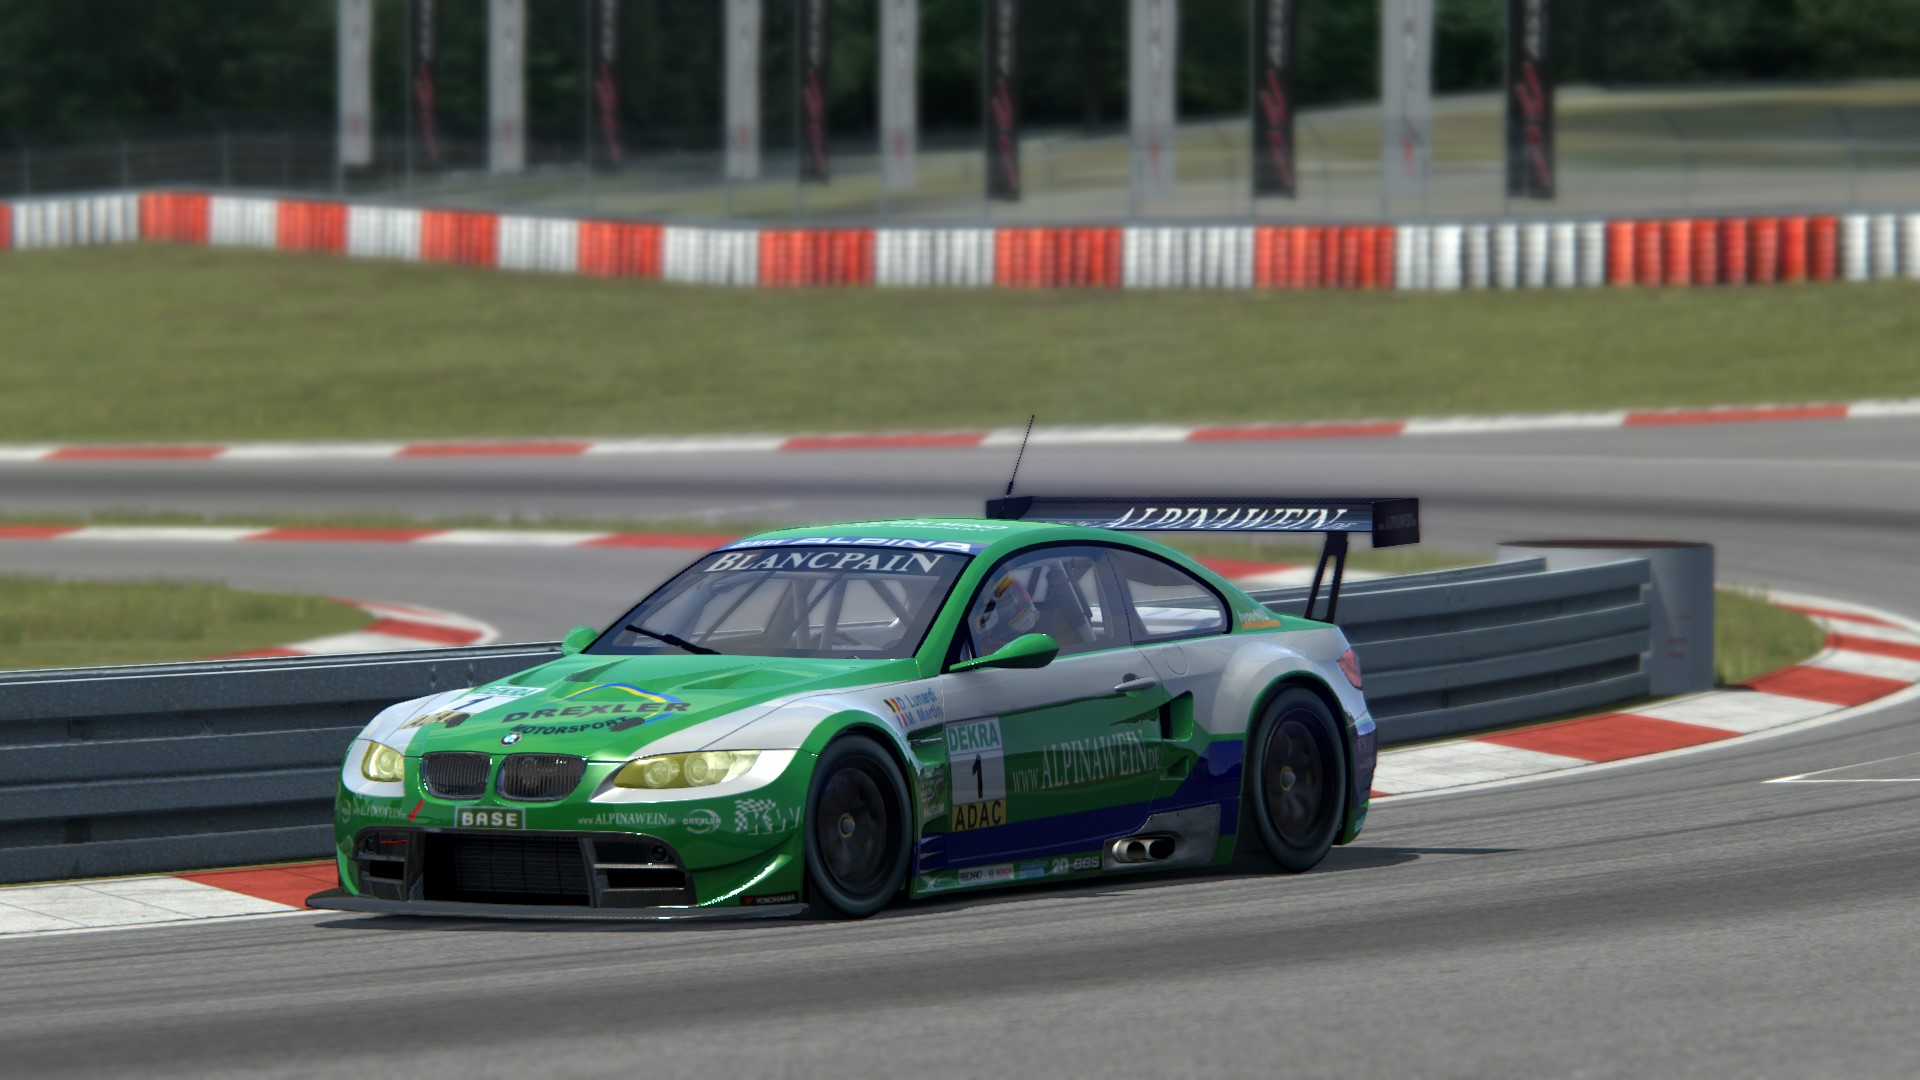 Screenshot_bmw_m3_gt2_nurburgring_8-3-2015-9-7-46.jpg